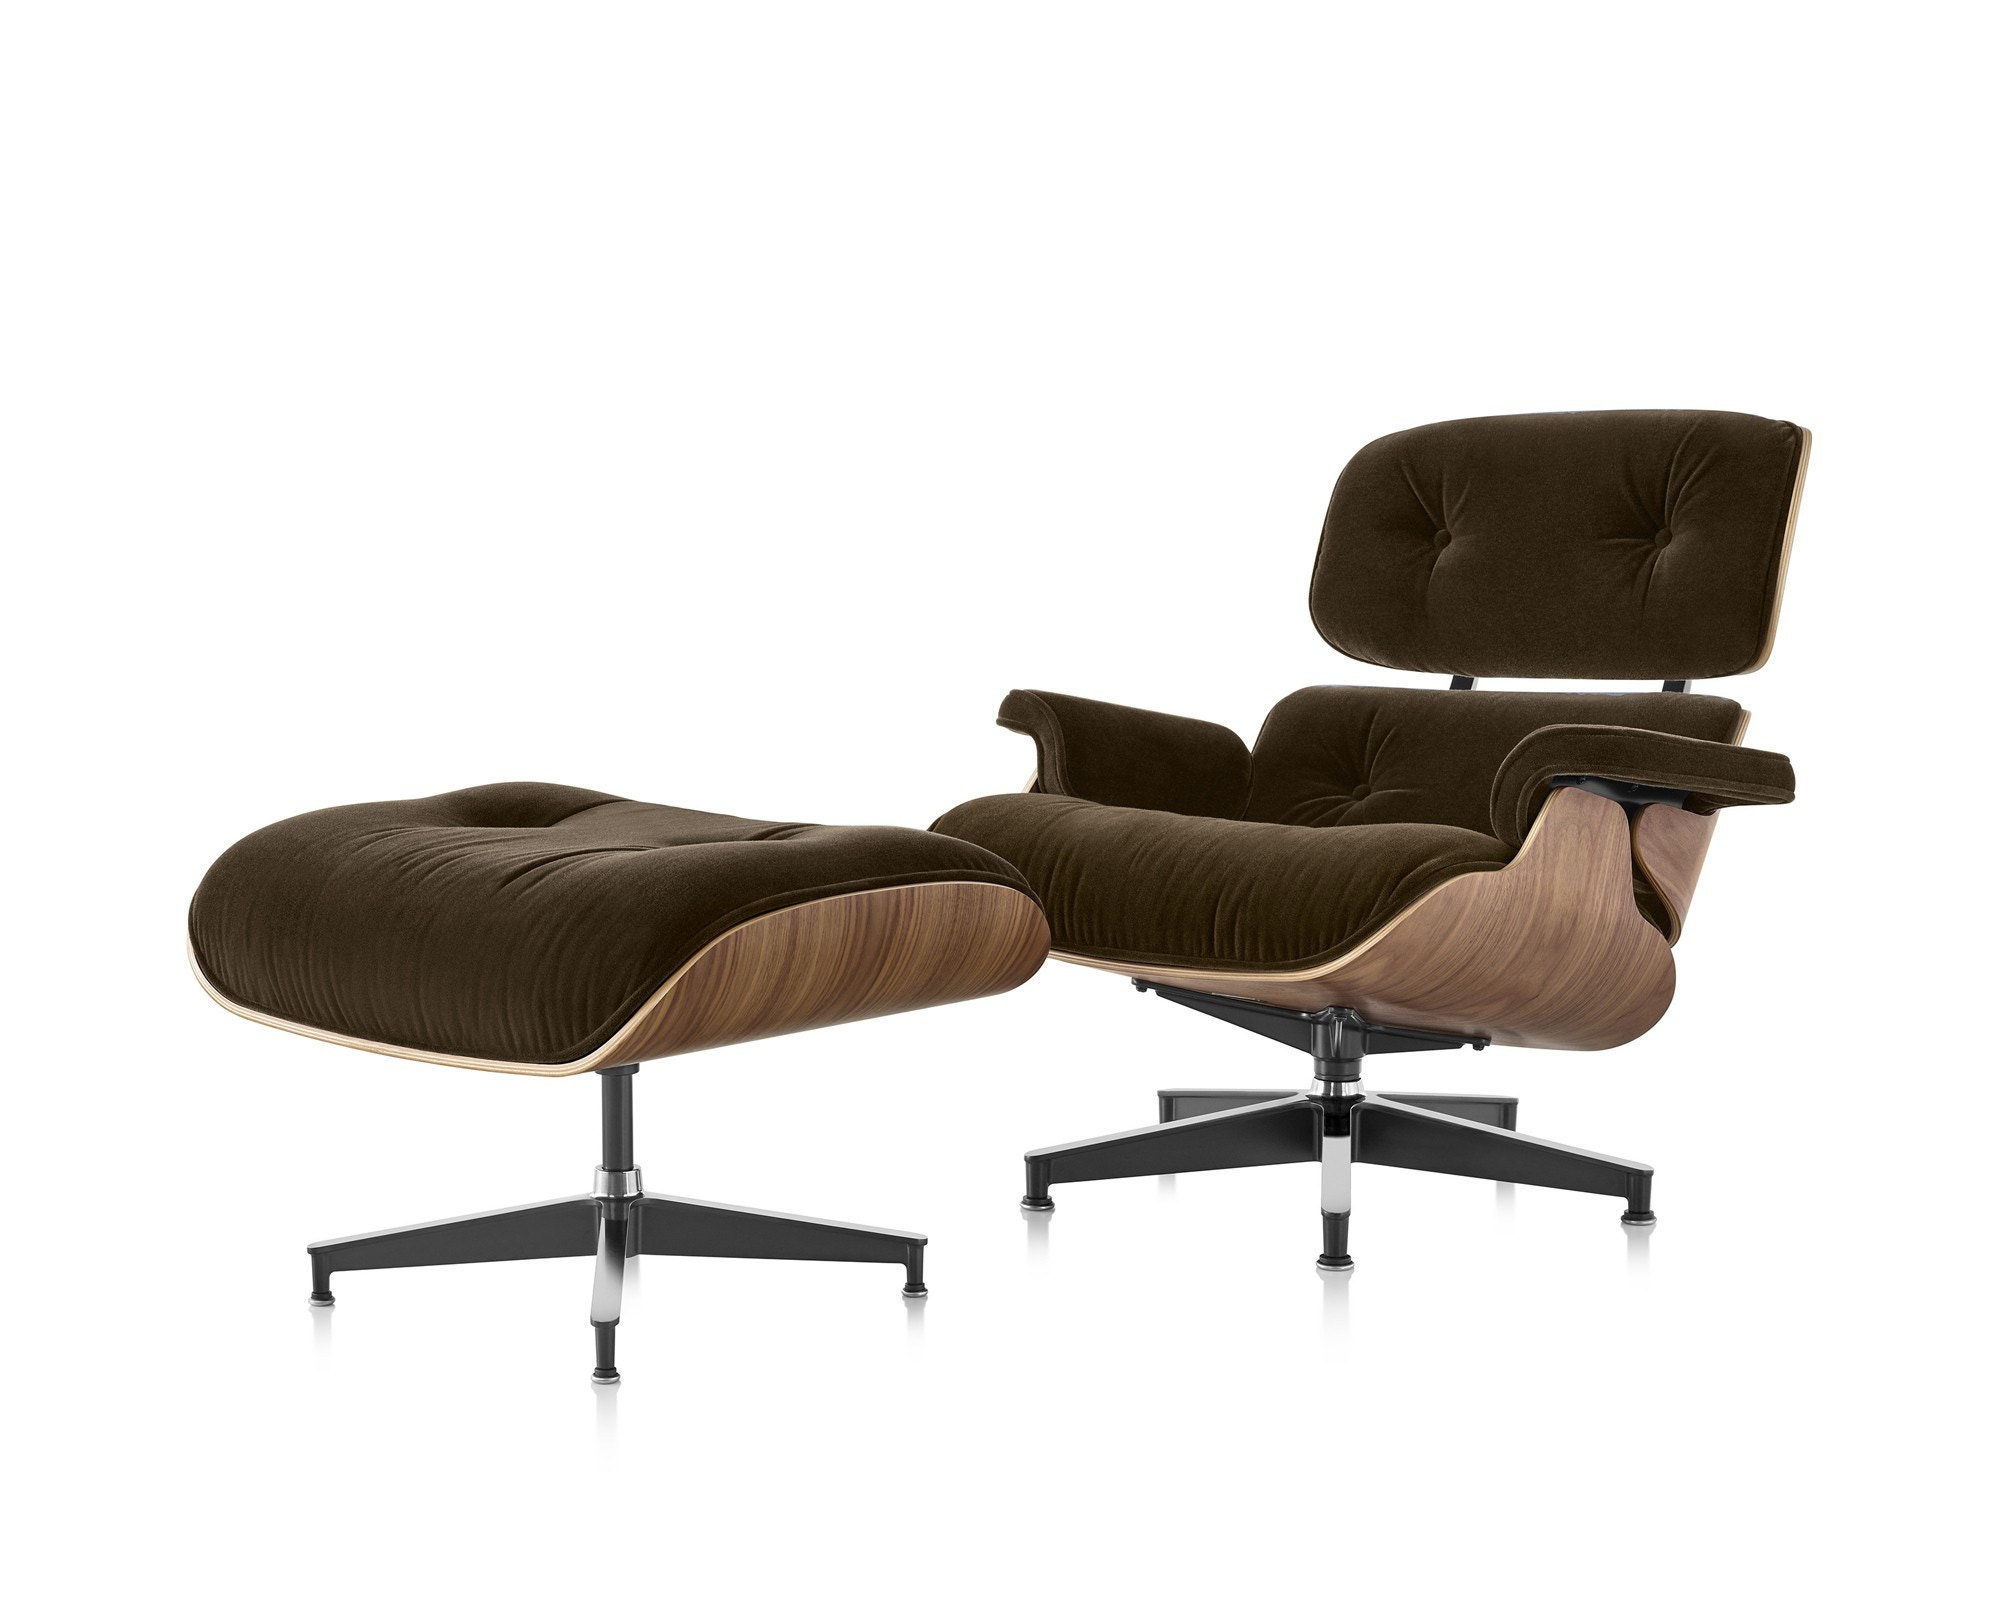 herman miller eames lounge chair and ottoman in mohair. Black Bedroom Furniture Sets. Home Design Ideas